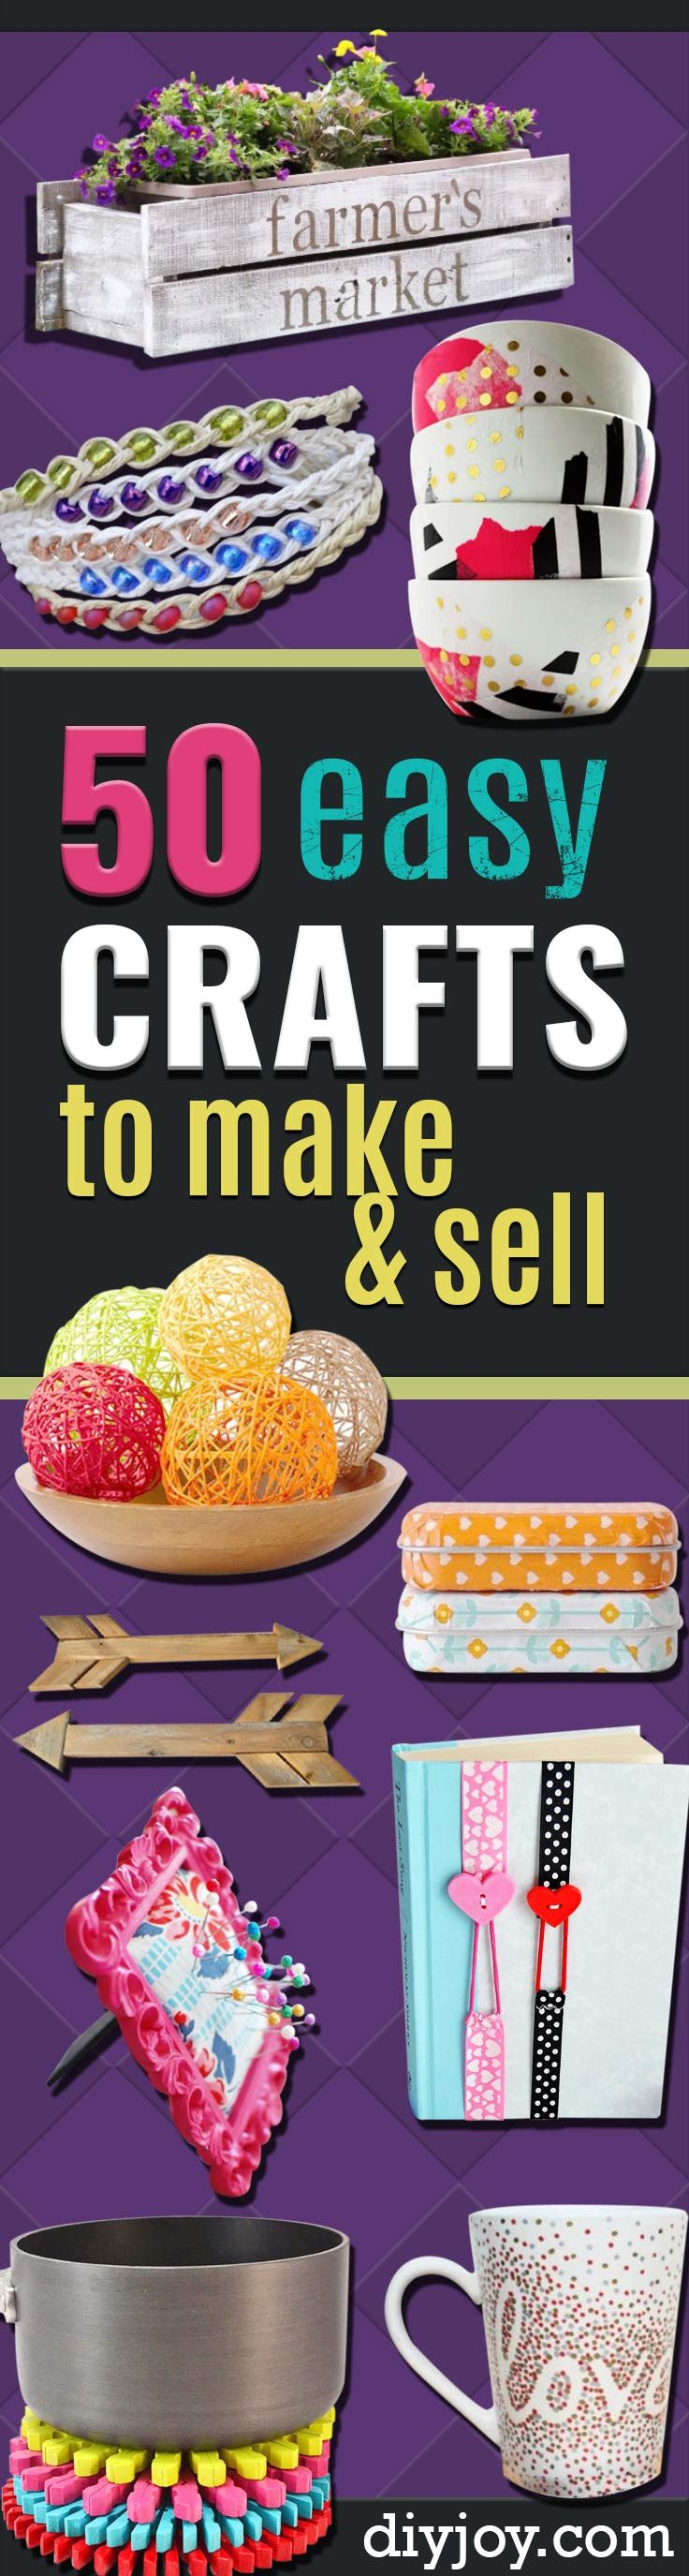 50 easy crafts to make and sell homemade crafts craft for Diy project ideas to sell